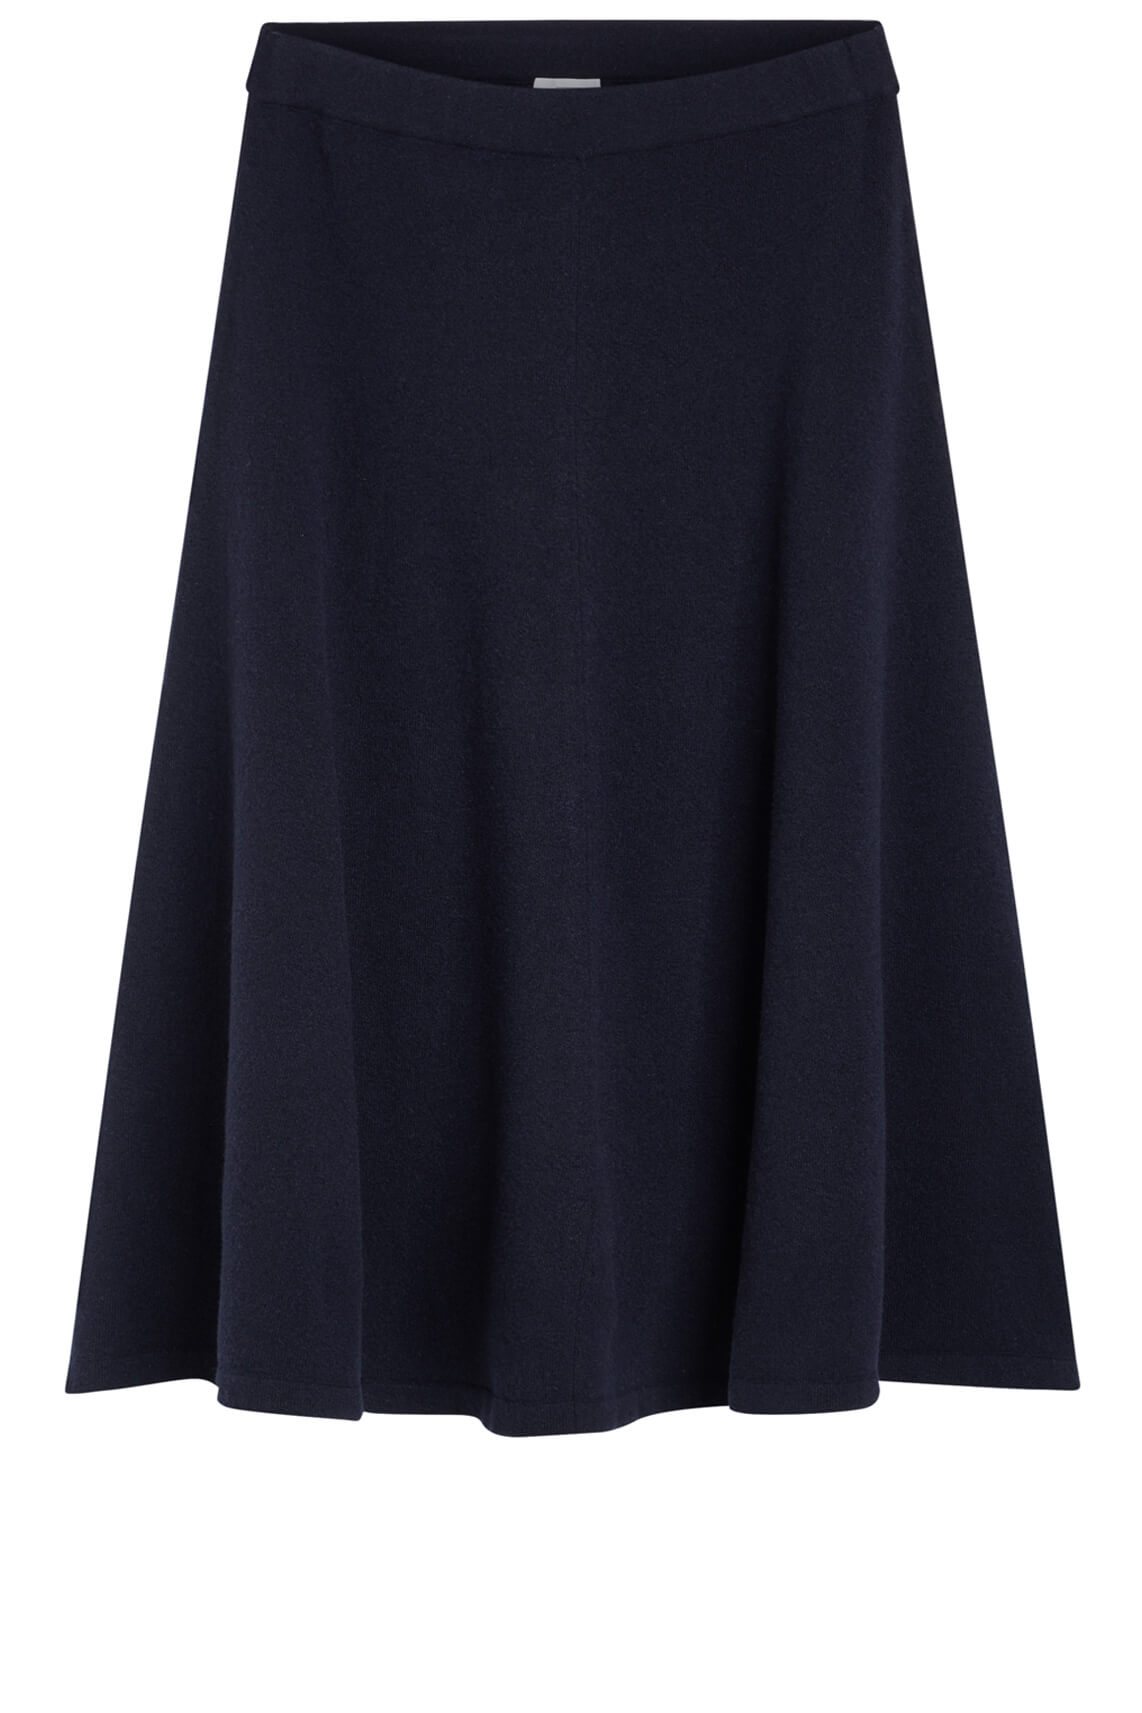 Closed Dames wollen rok Blauw